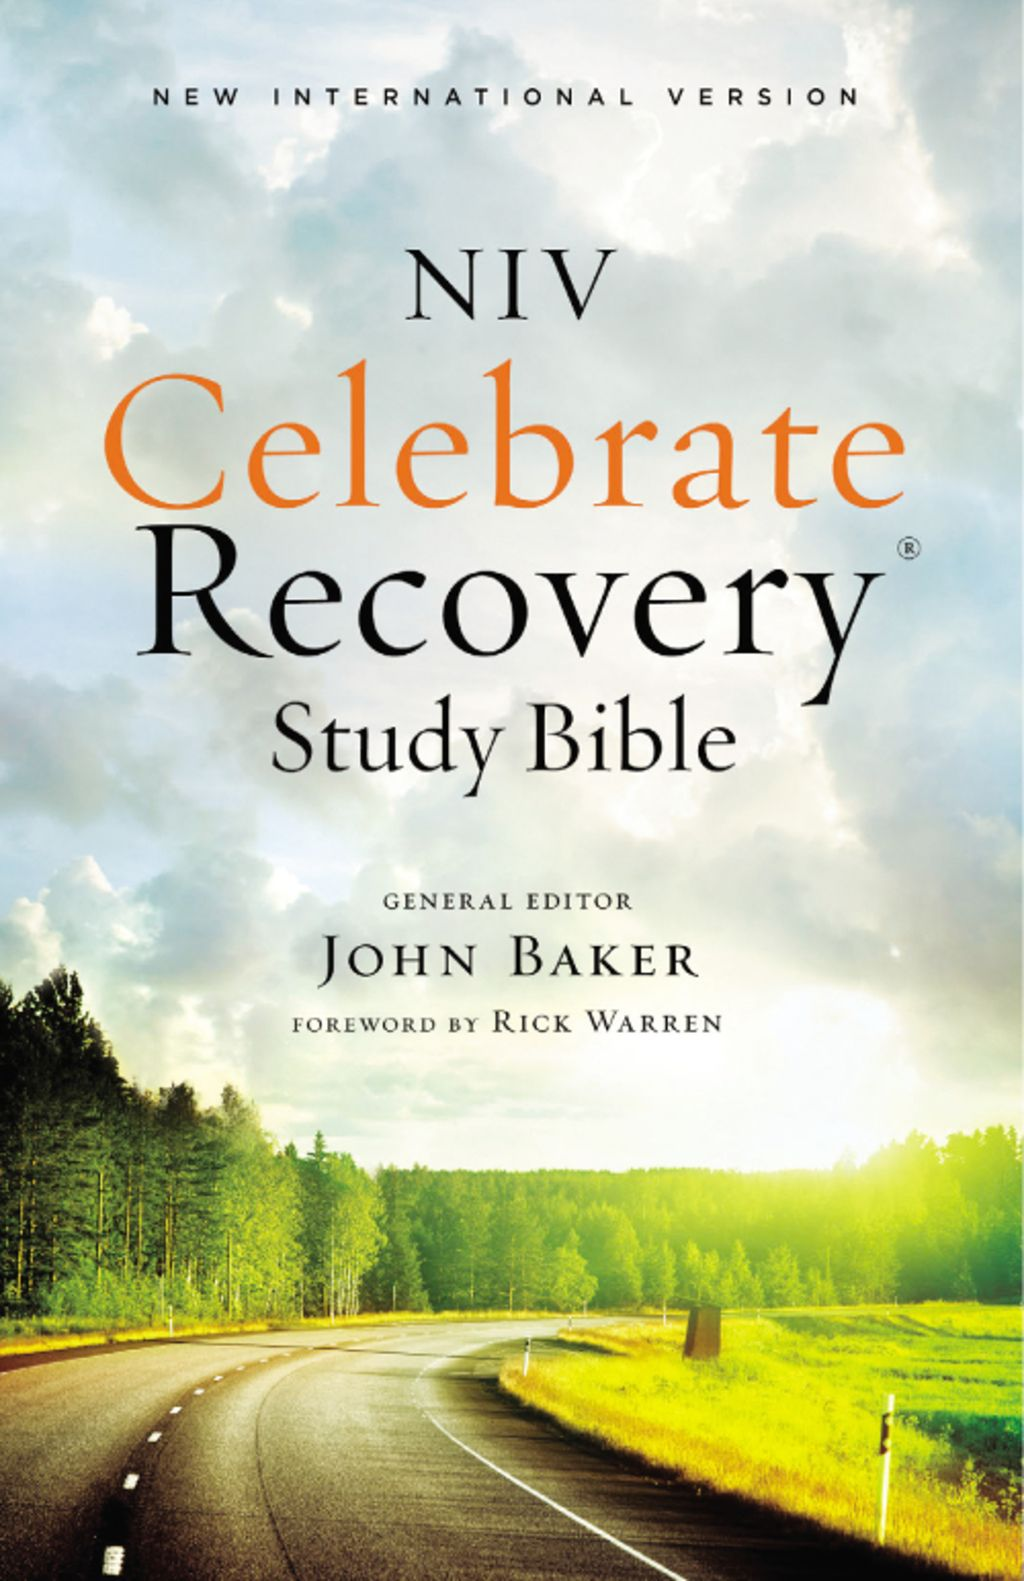 NIV Celebrate Recovery Study Bible eBook (eBook) | Products